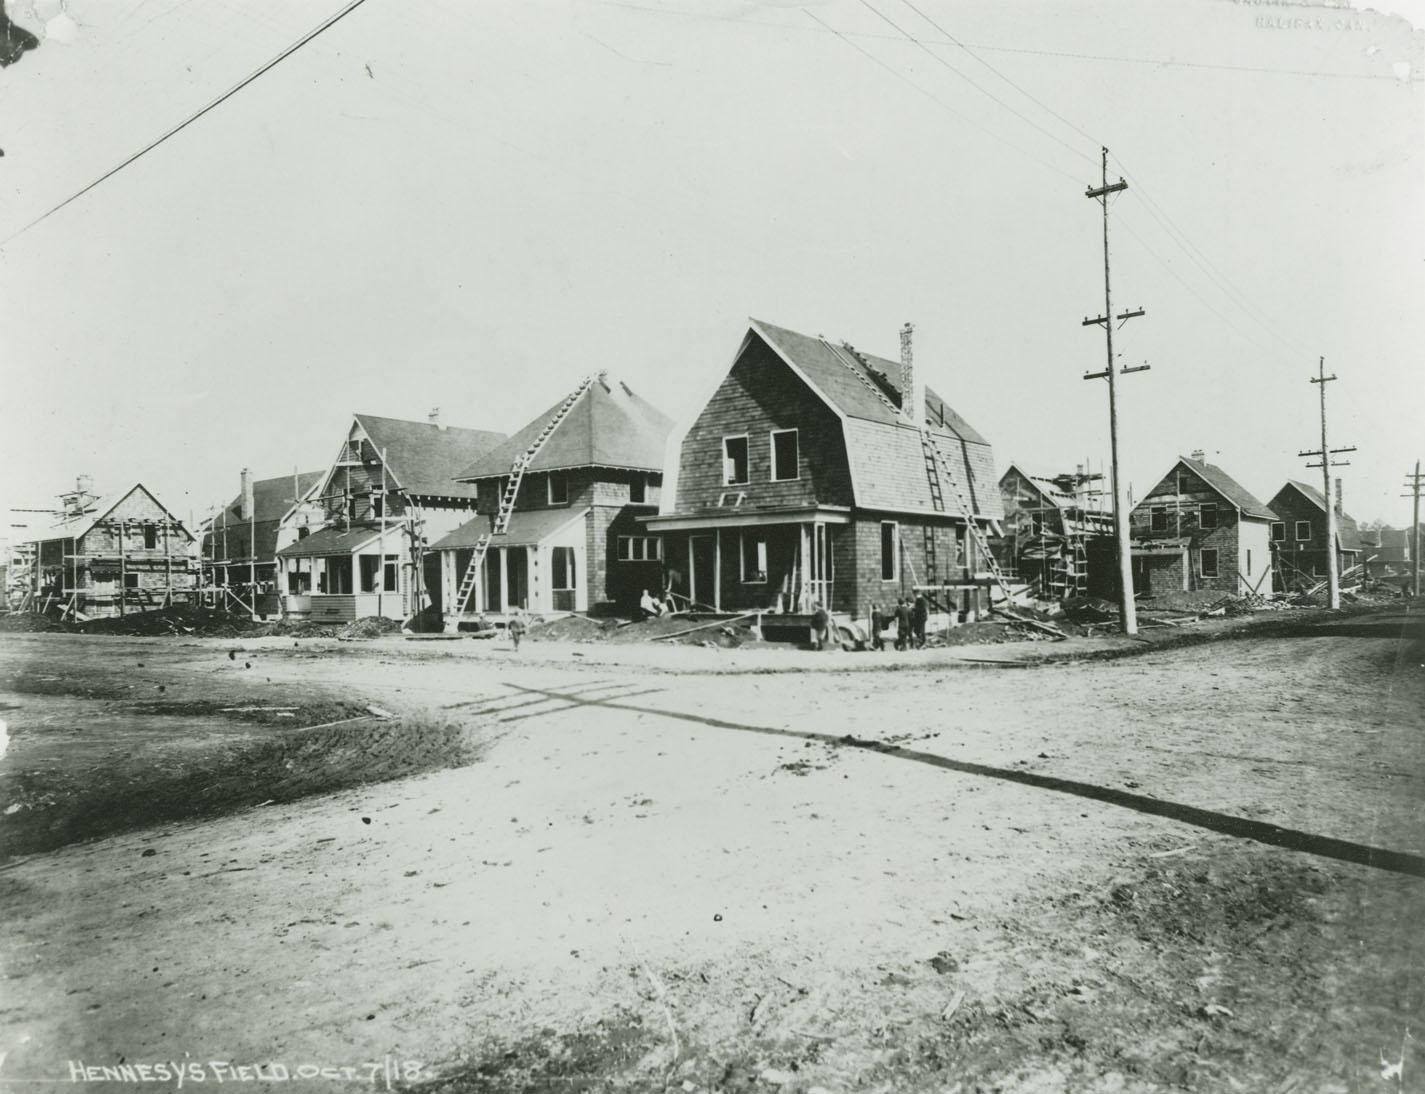 McTiernan house (on corner) and other Halifax Relief Commission houses under construction at the north-east corner of Robie and West Young streets, Halifax